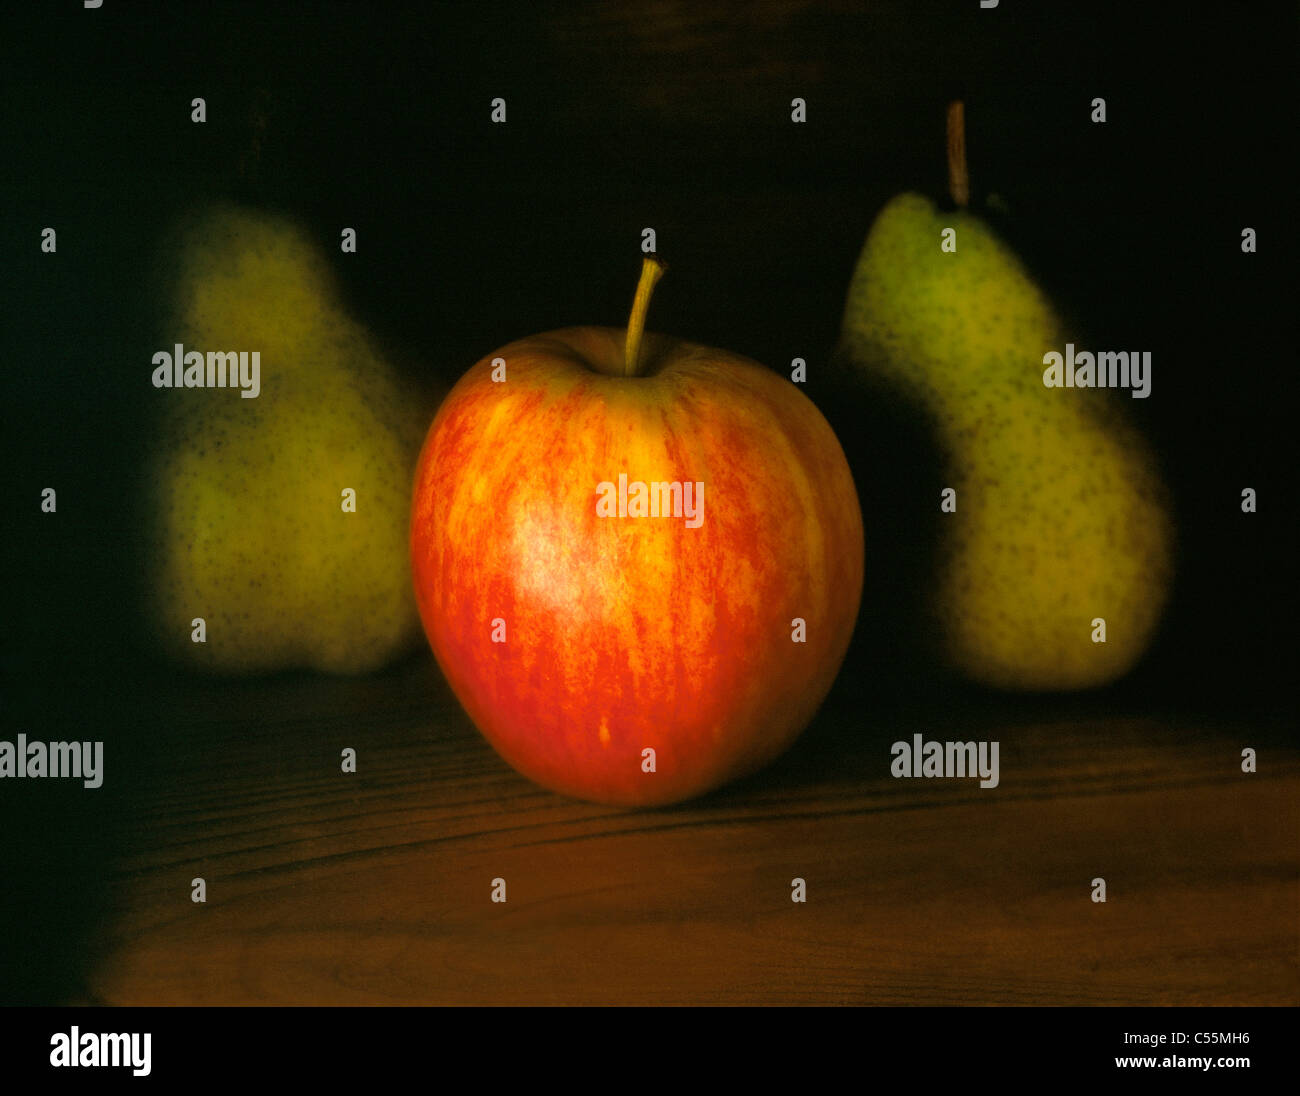 RED APPLE WITH TWO PEARS - Stock Image